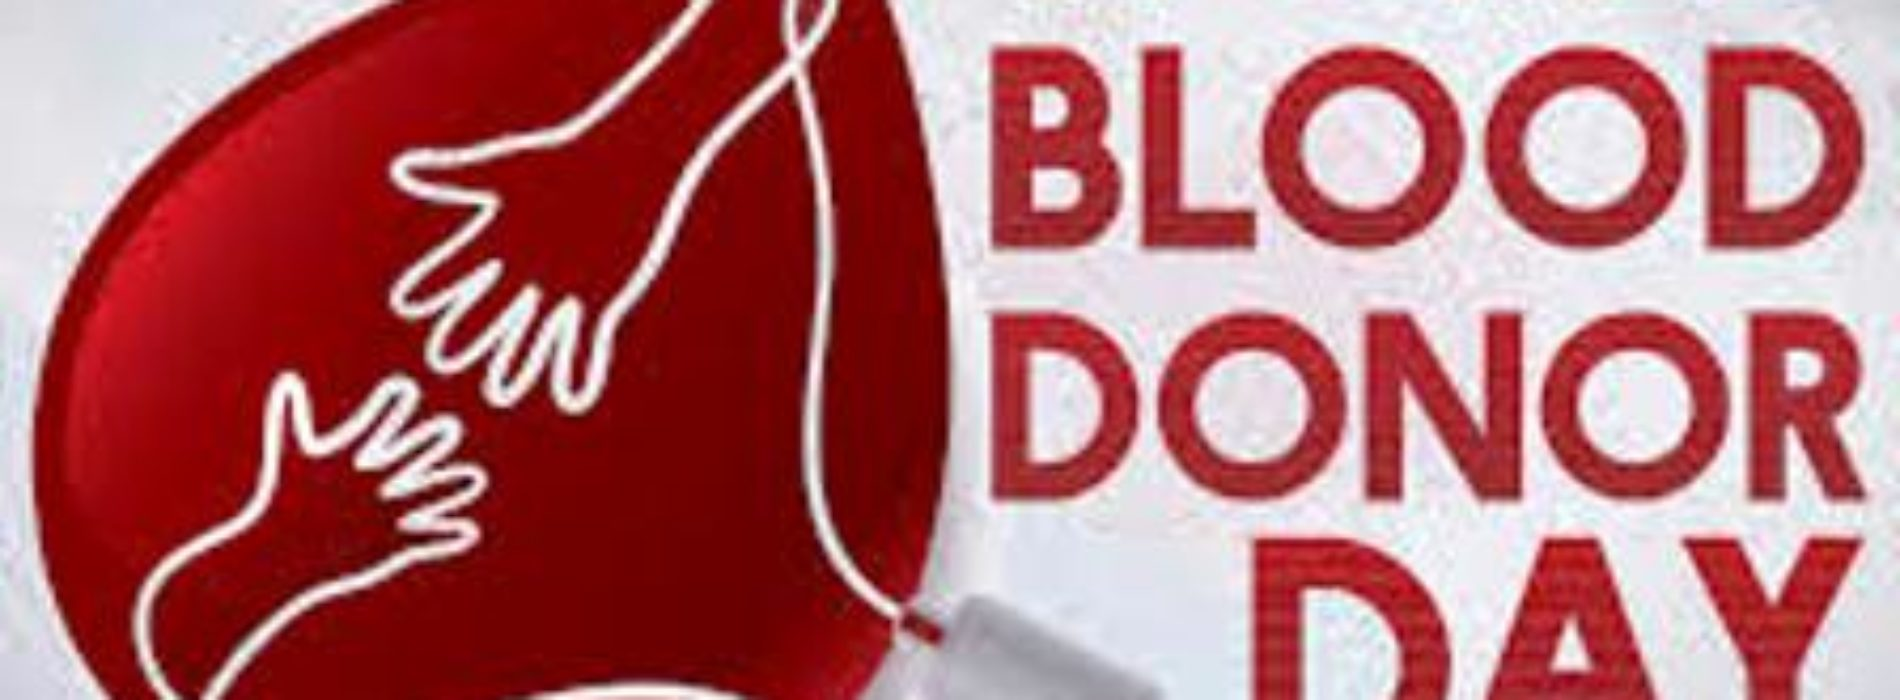 Nigeria yet to meet up to 10% of blood need, says Haematologist  on World Blood donor Day